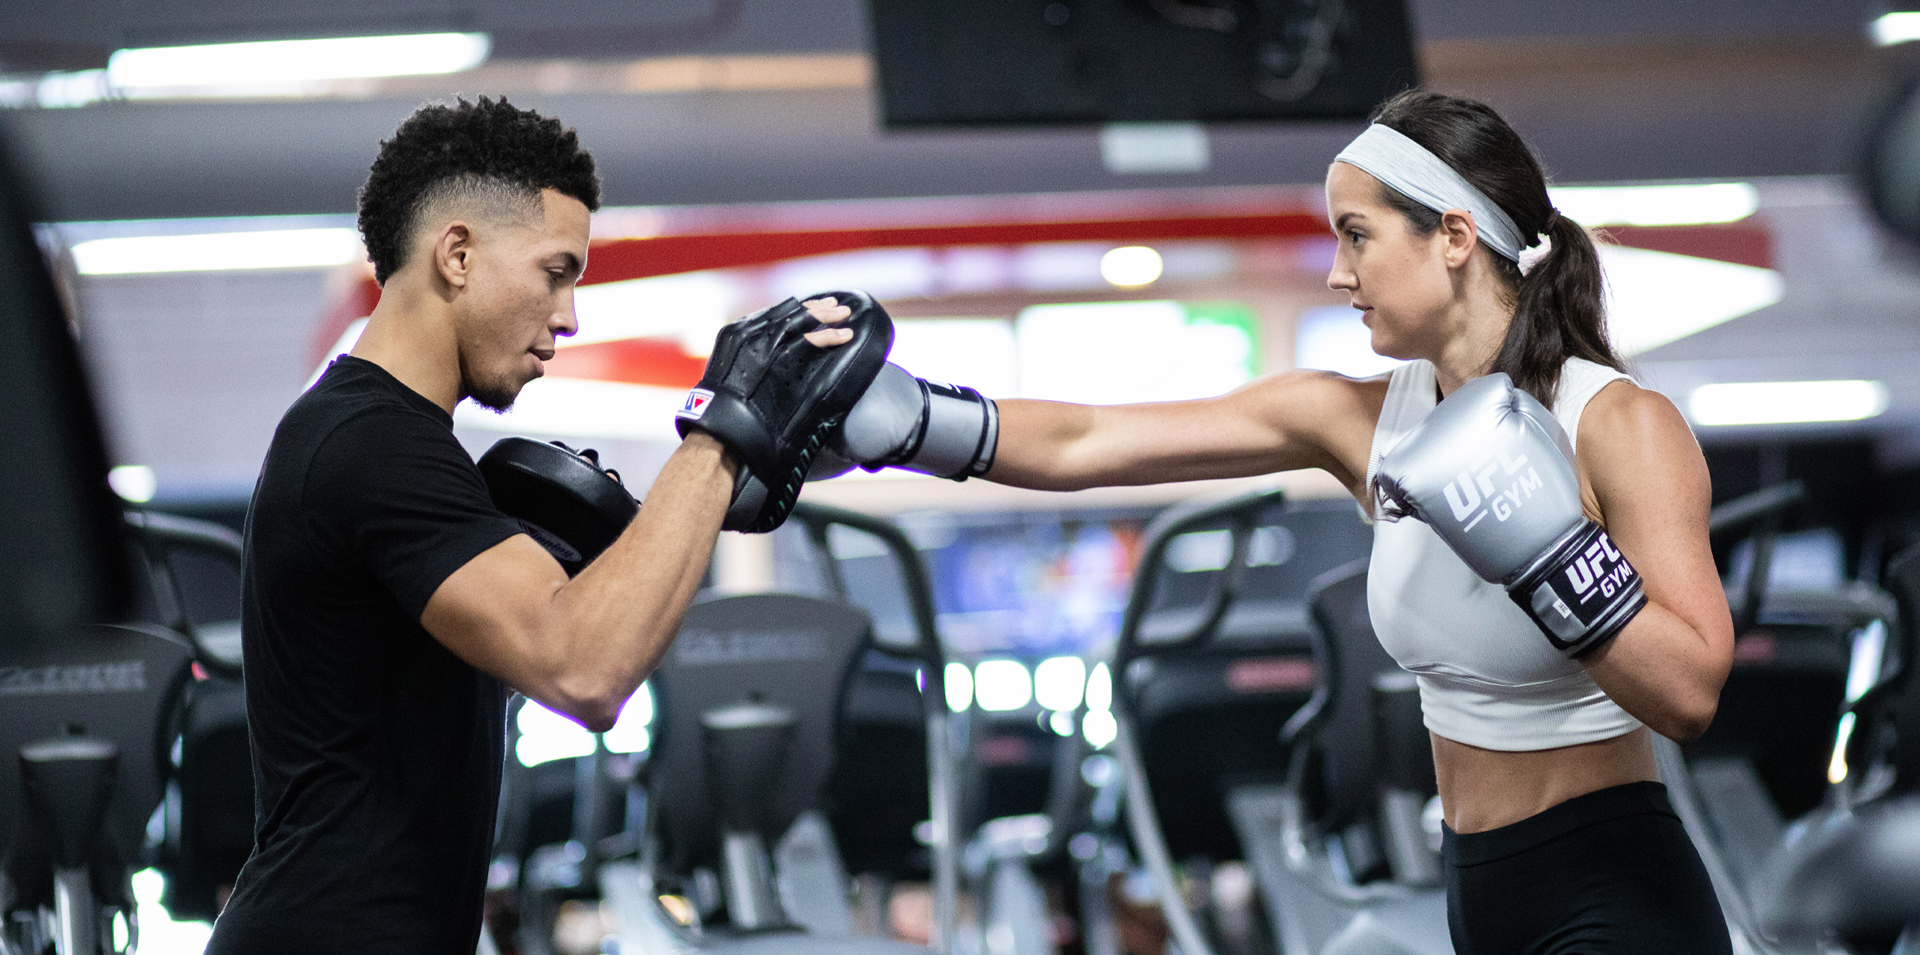 Member and coach punching together